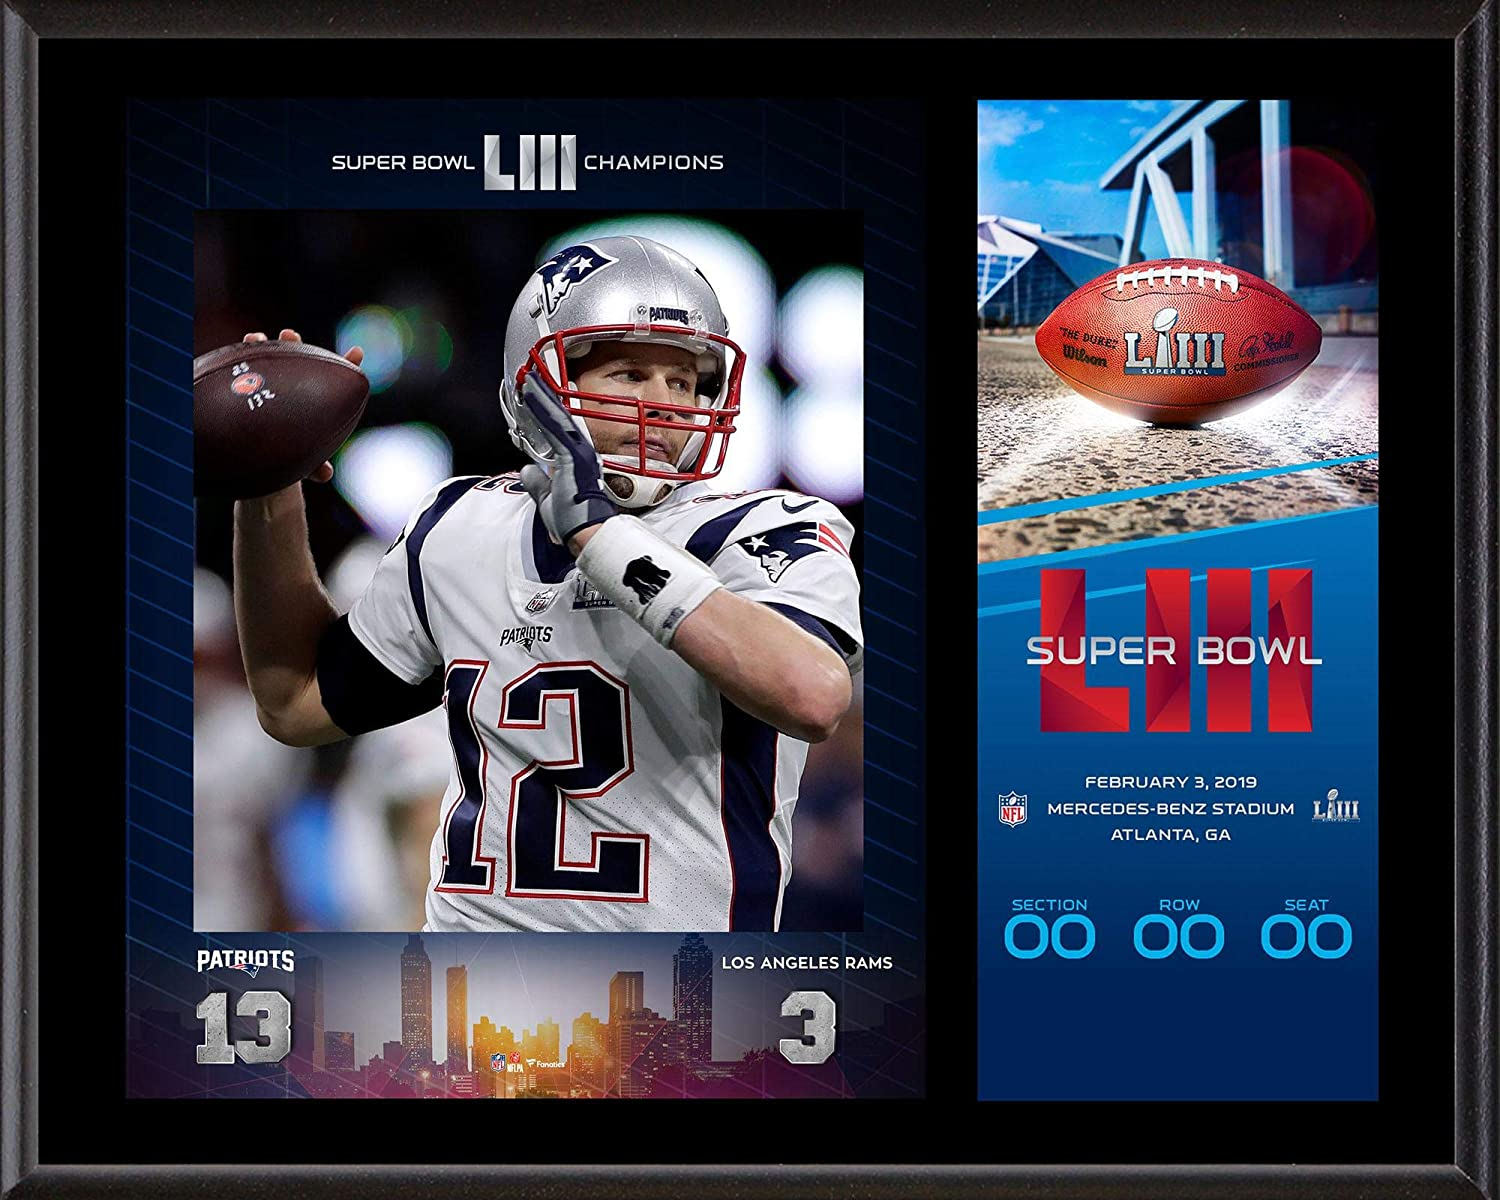 Tom Brady New England Patriots 12'' x 15'' Super Bowl LIII Champions Sublimated Plaque with Replica Ticket - NFL Team Plaques and Collages